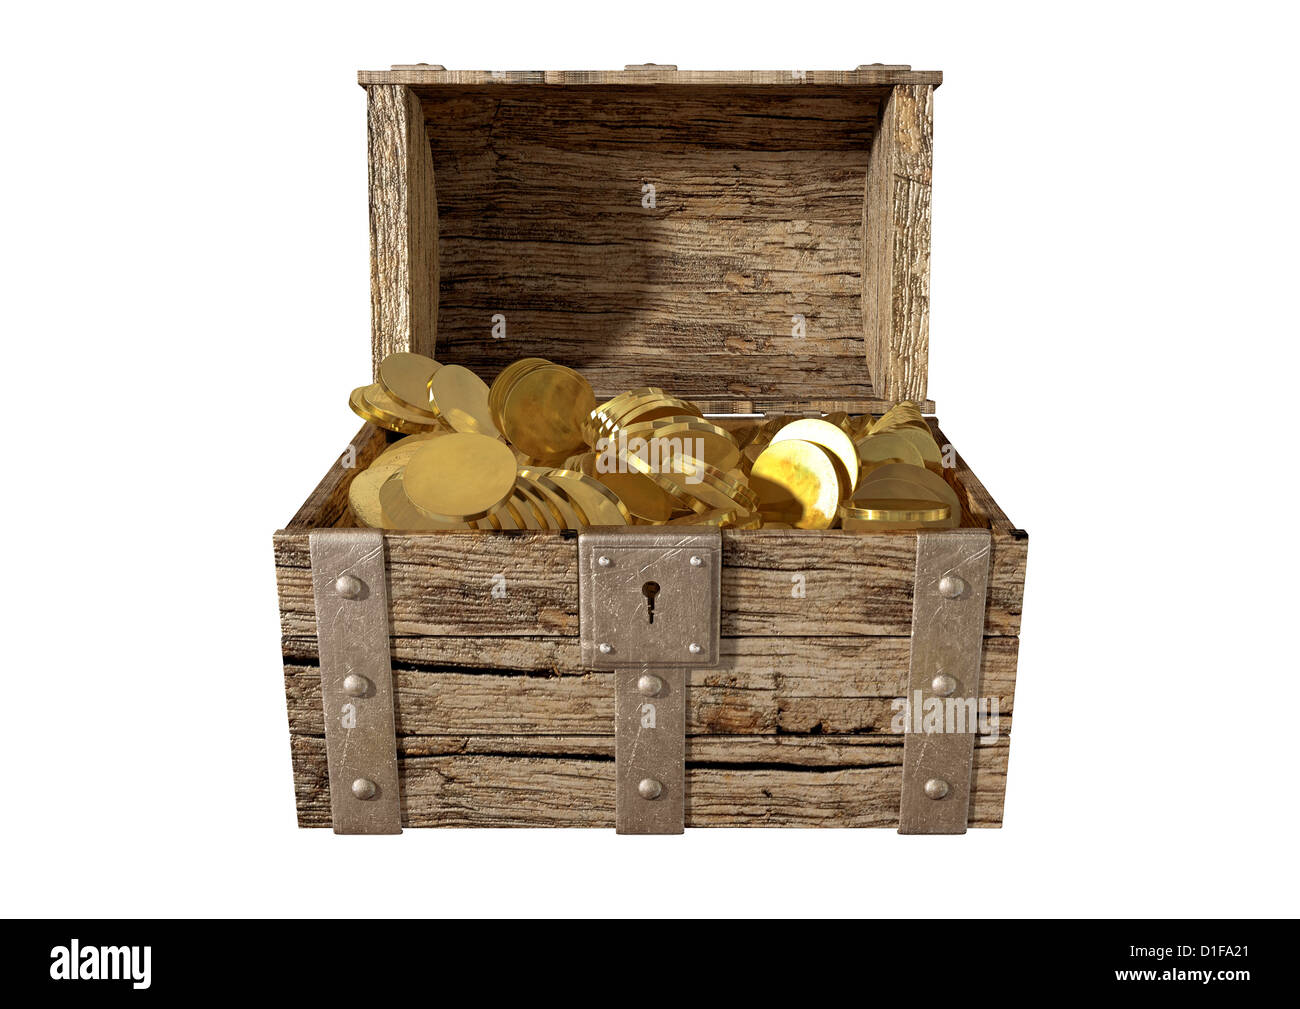 treasure chest stock photos u0026 treasure chest stock images alamy